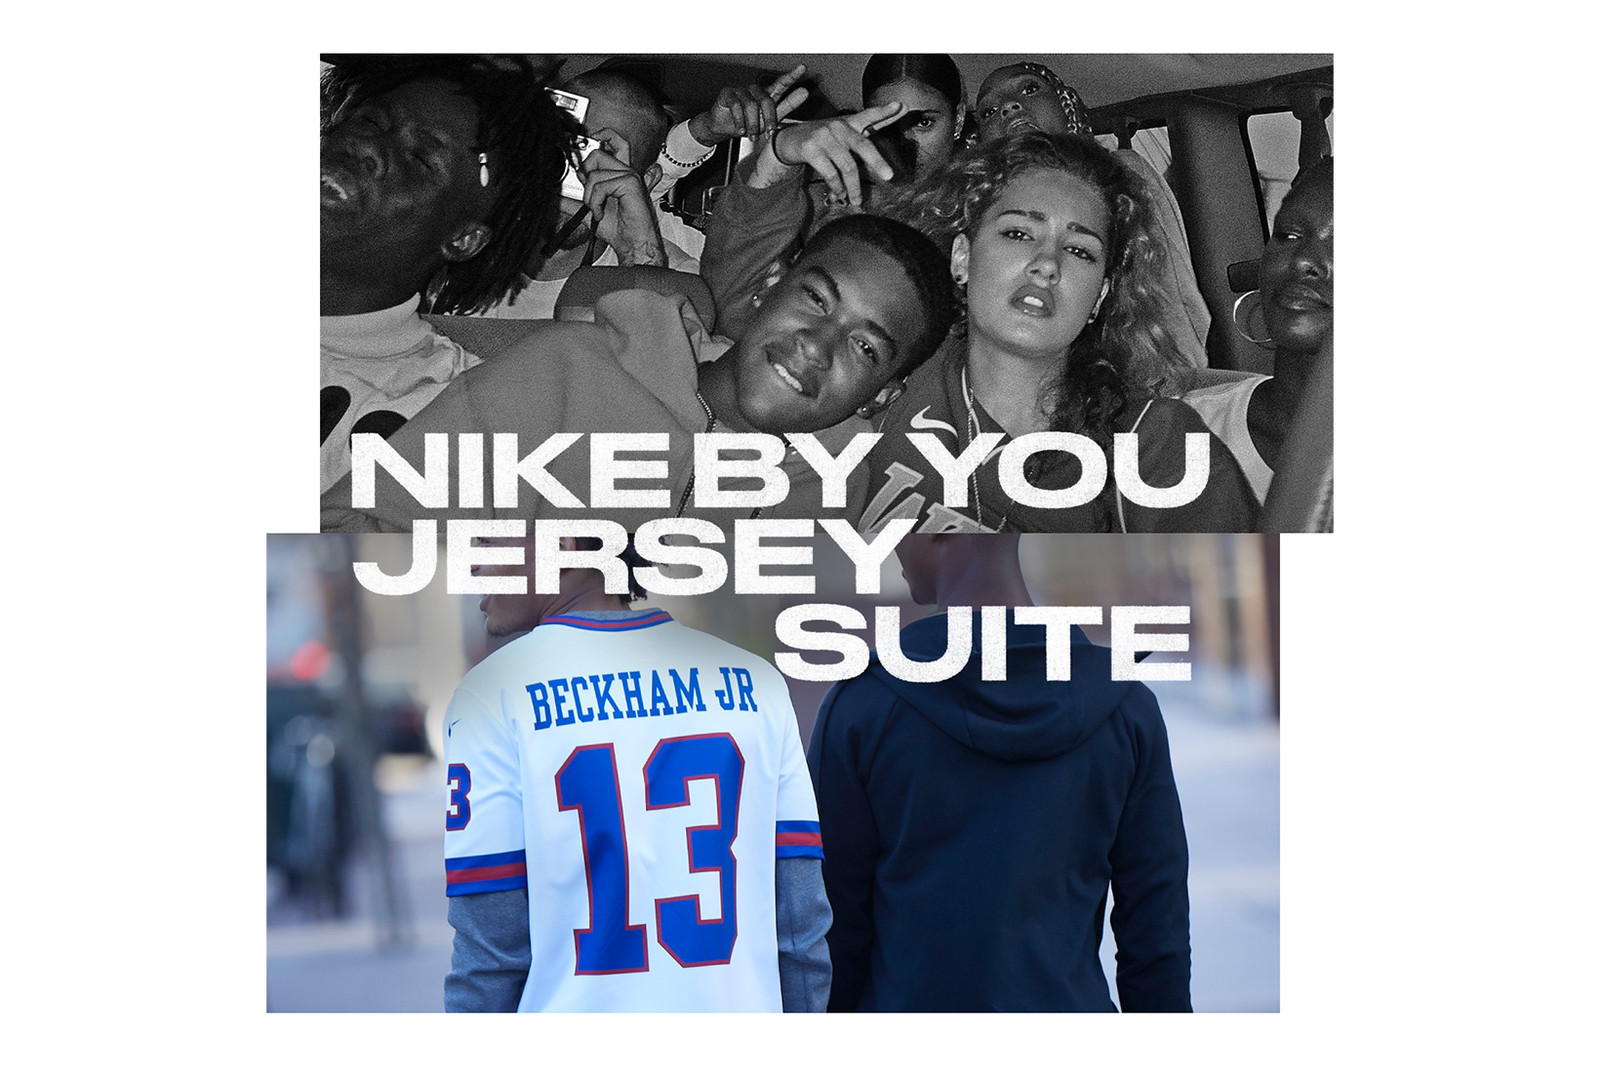 Nike US Open NYFW Made in NY Events Roger Federer Michael Jordan OFF WHITE Virgil Abloh Jordan Brand PSNY